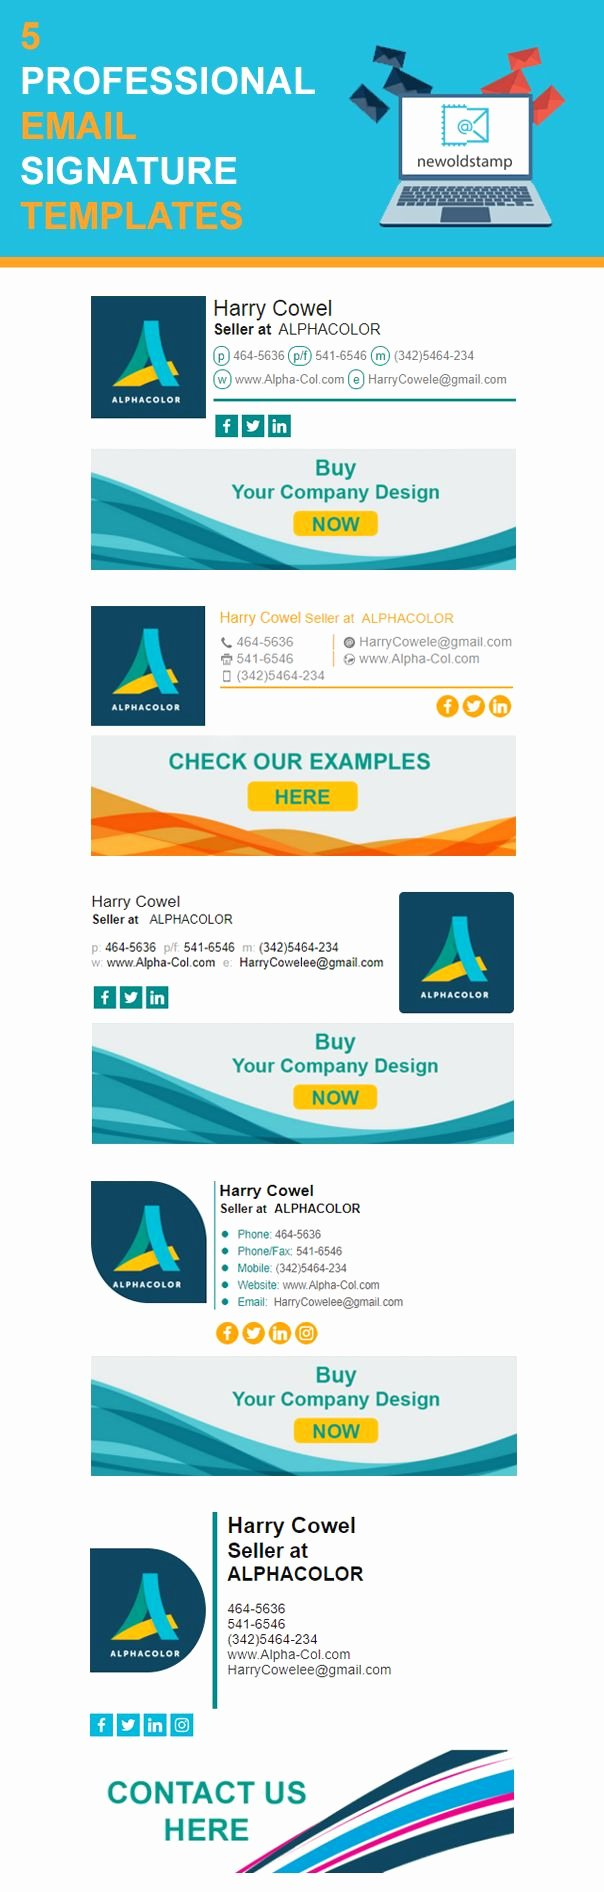 Professional Email Template Free Inspirational Professional Email Signature Templates Free Inspirational